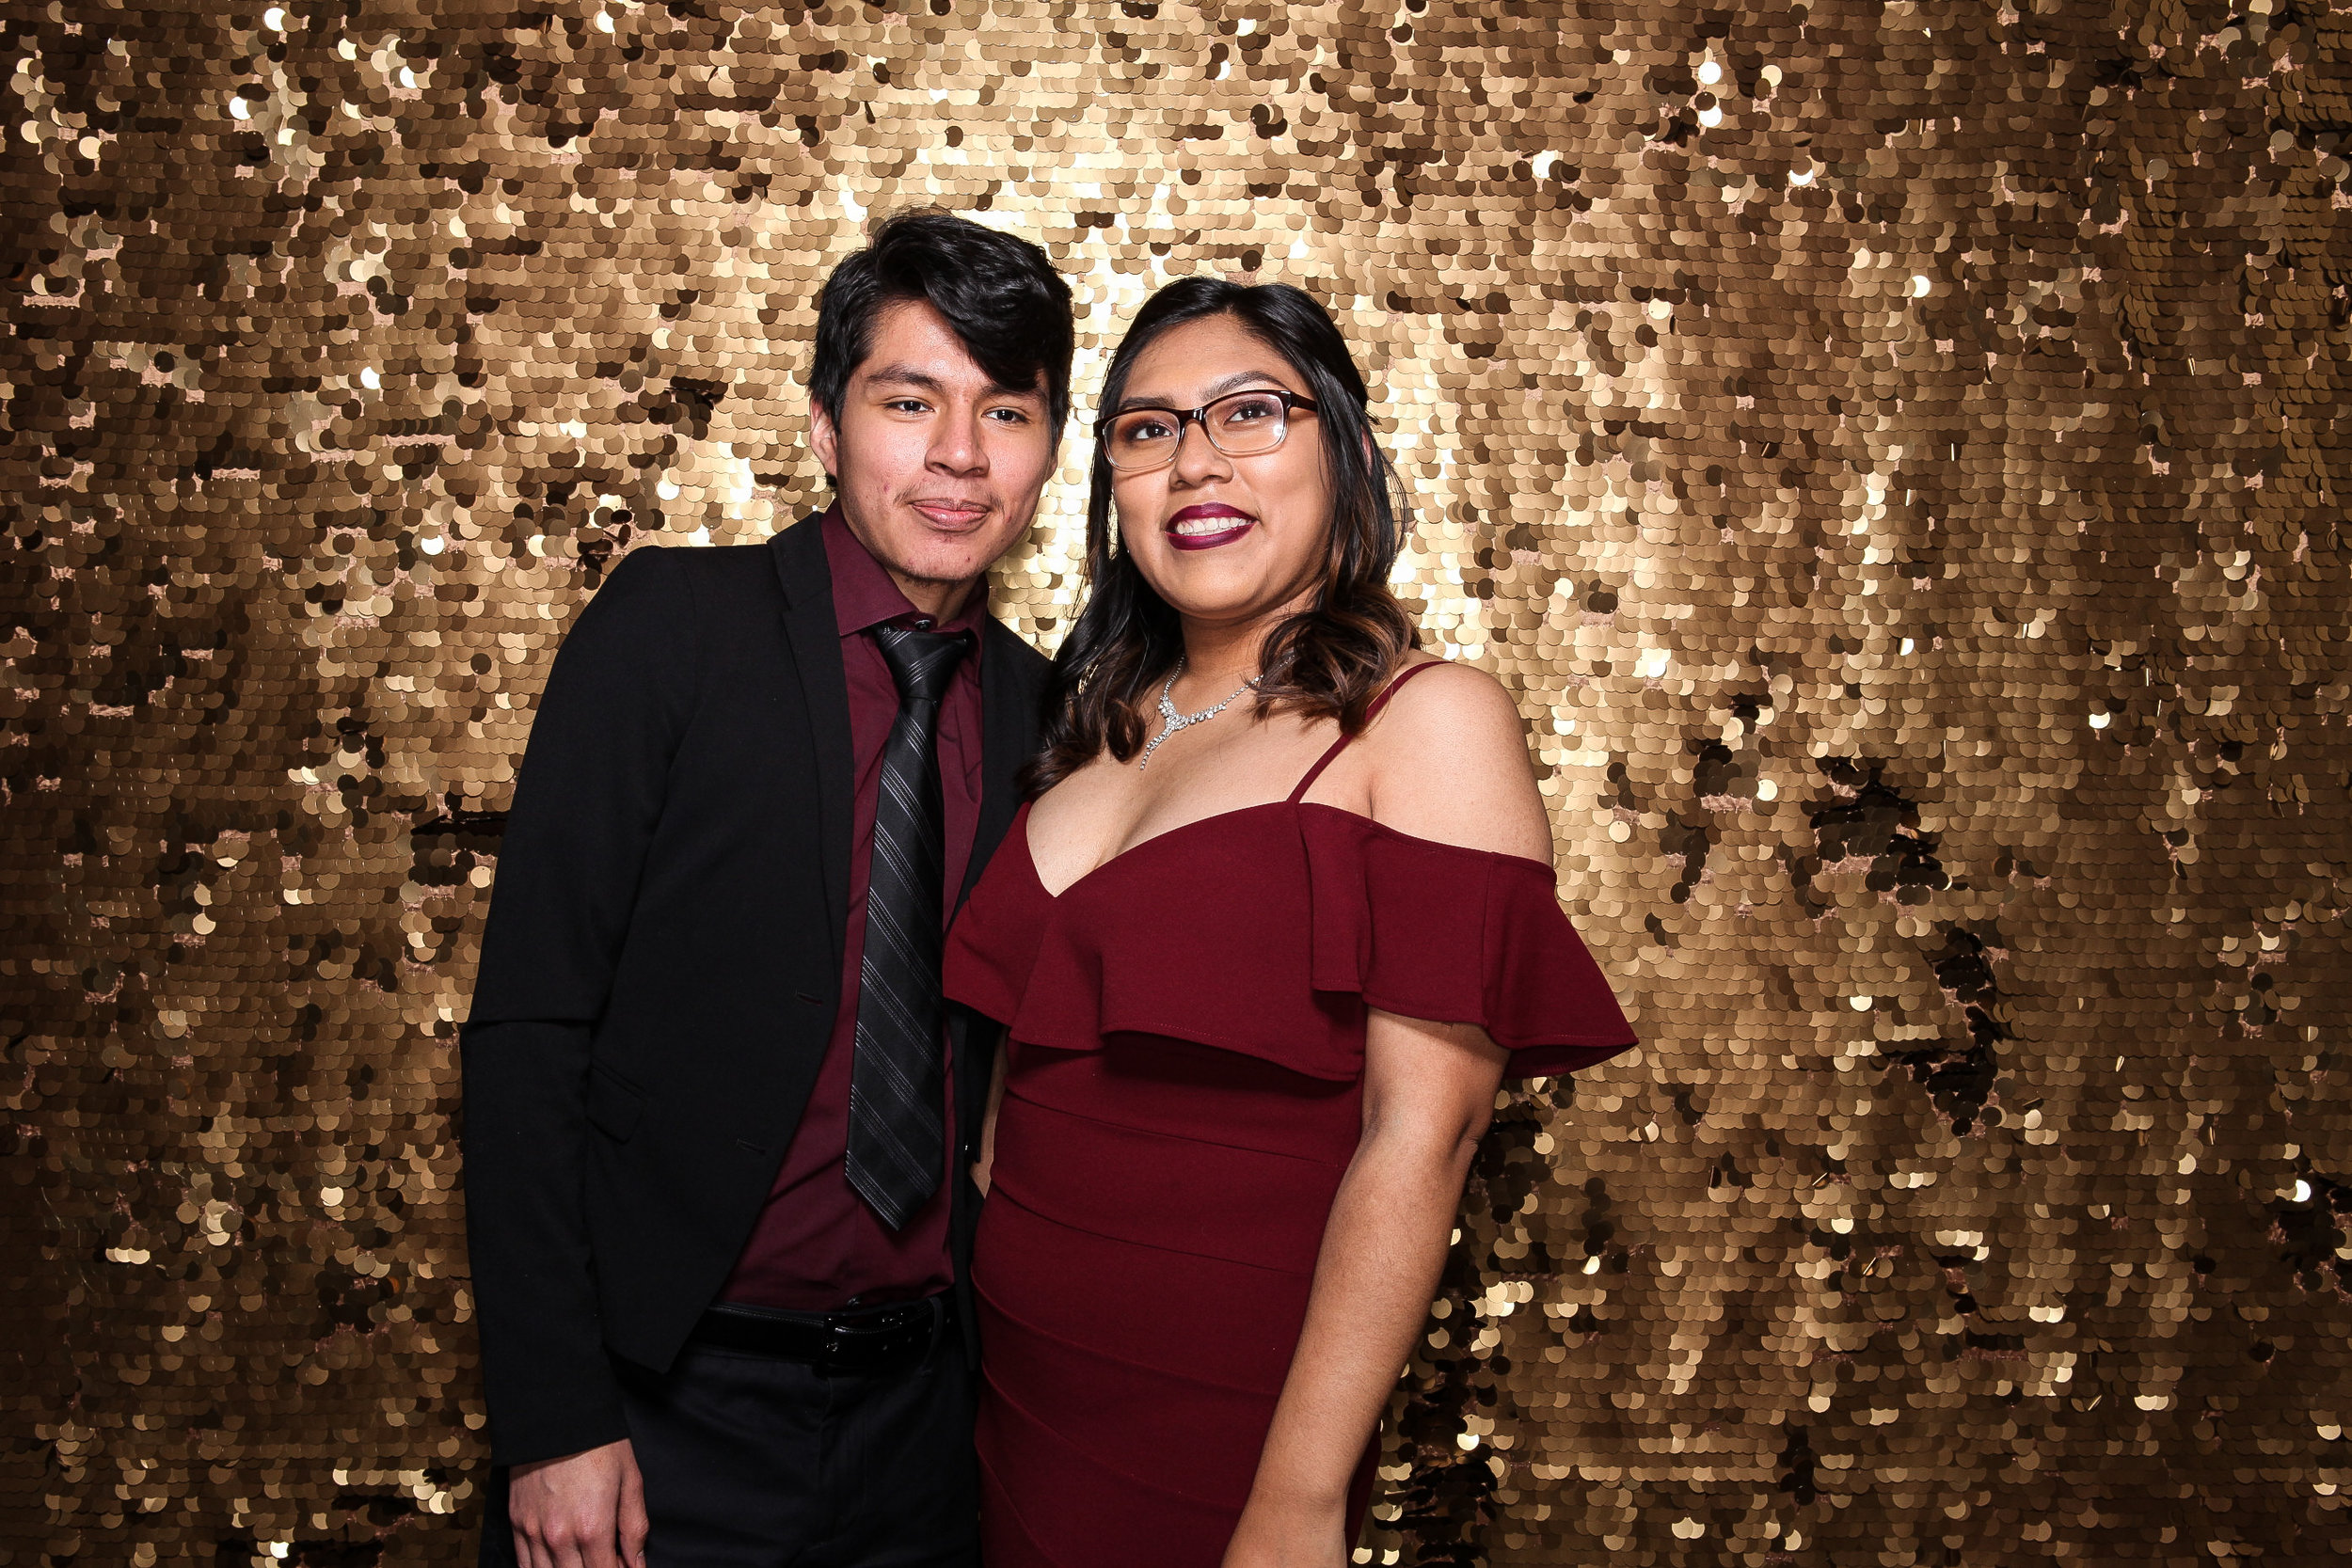 20190503_Adelphi_Senior_Formal-347.jpg